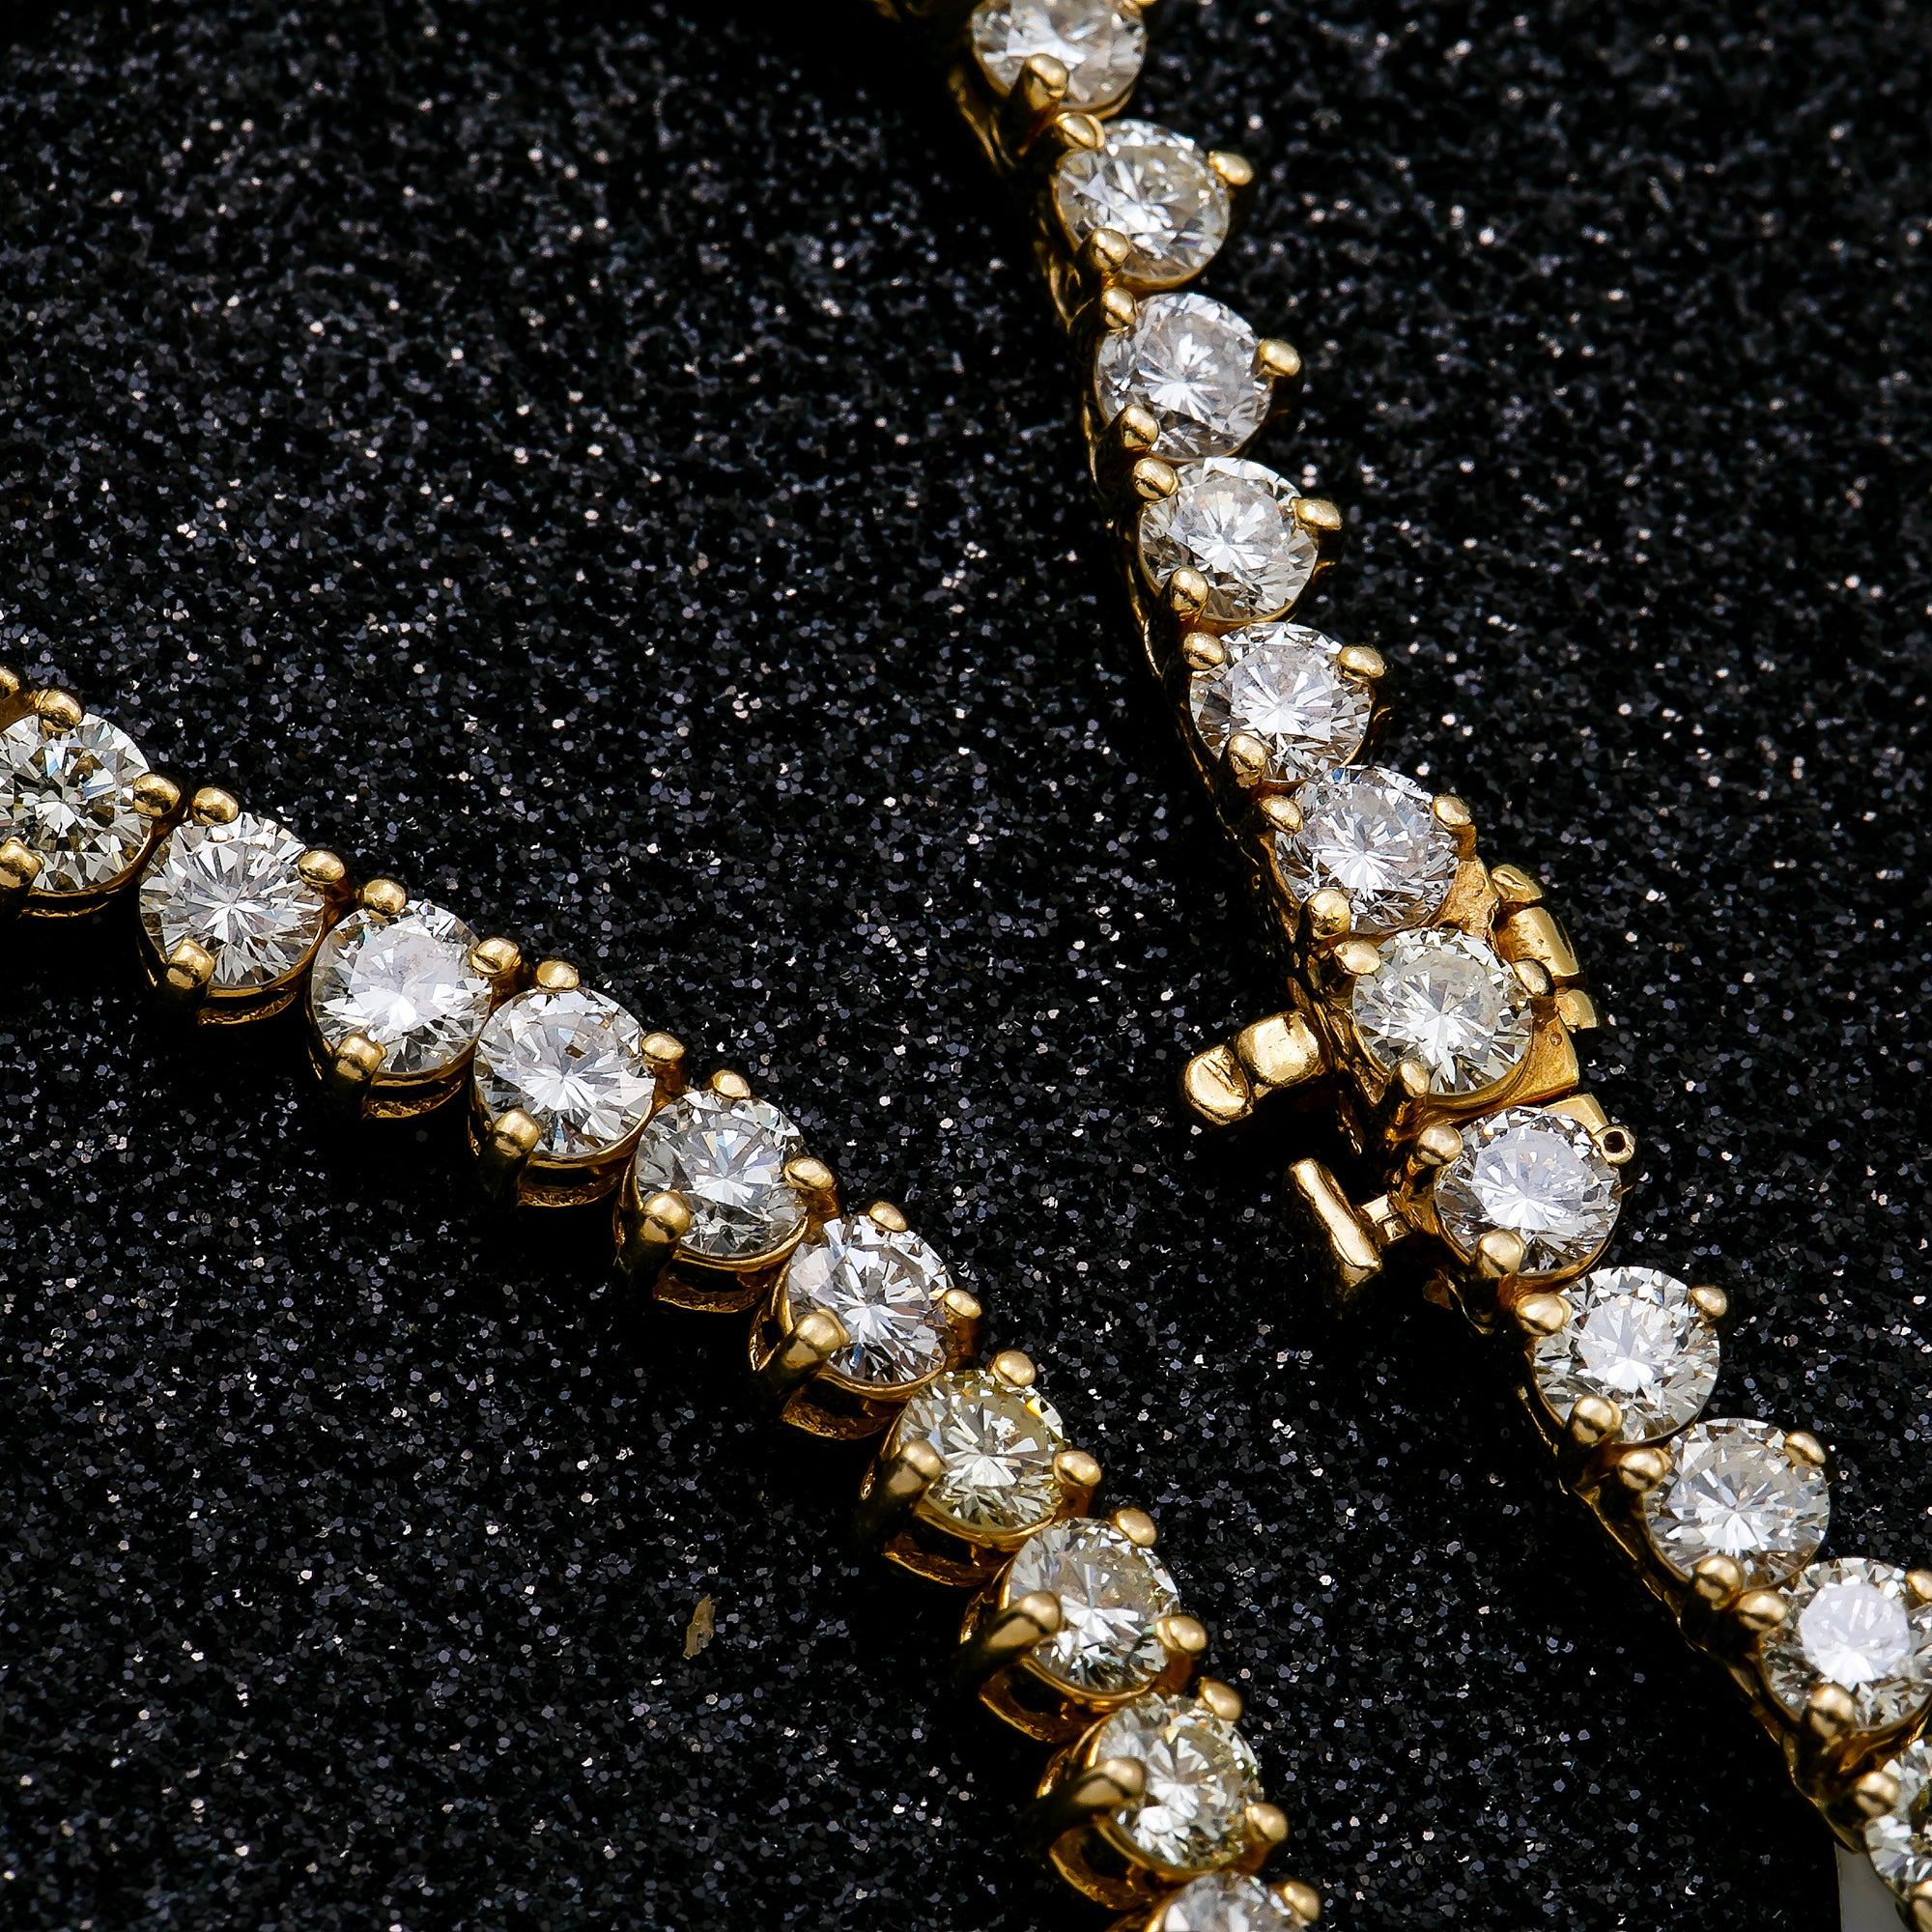 14K Yellow Gold Men's Tennis Chain With 25.90 CT Diamonds